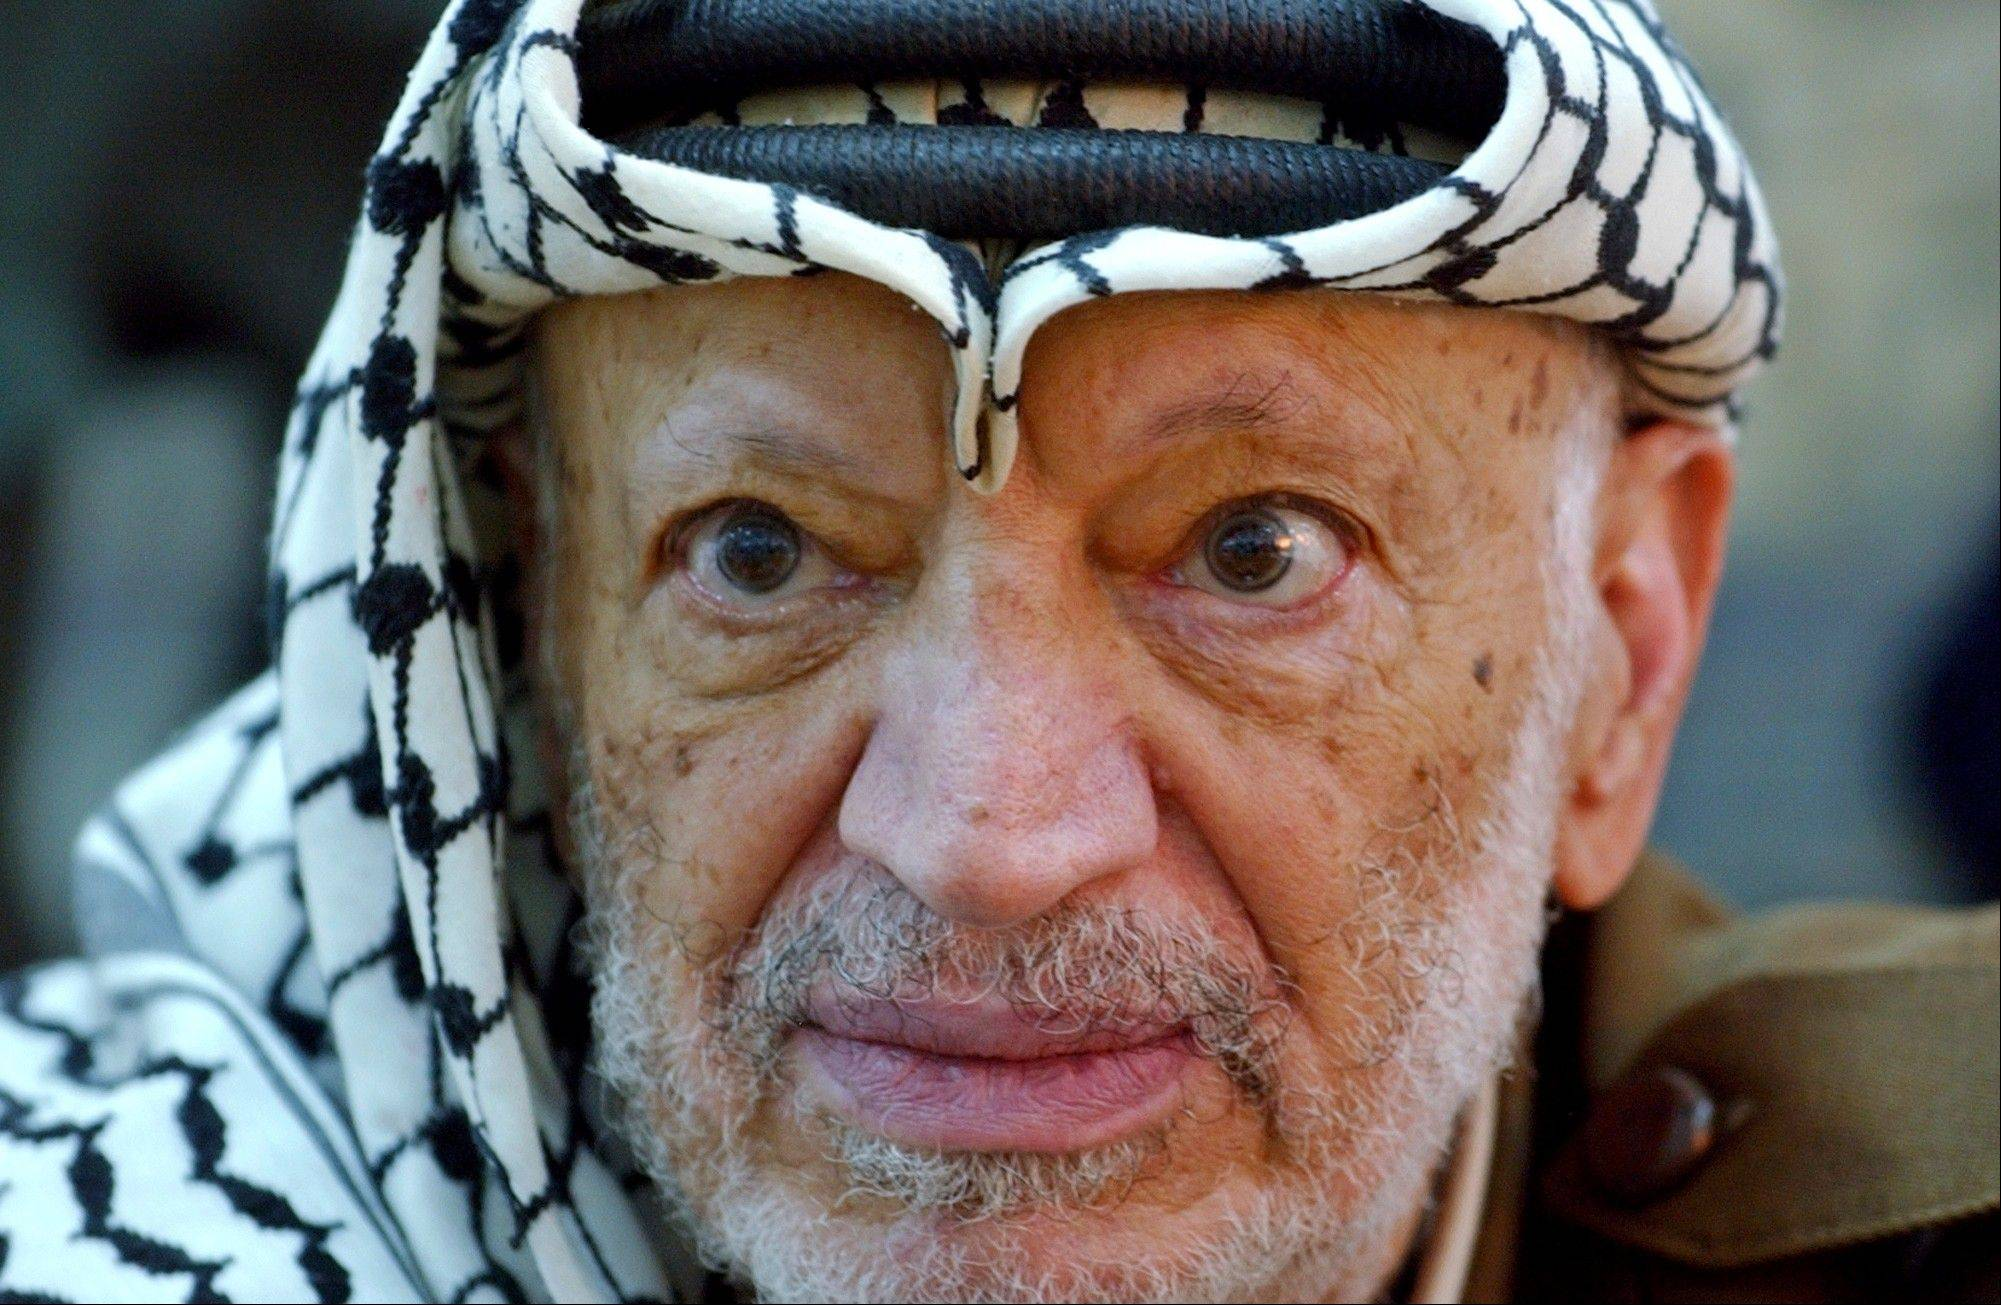 Yasser Arafat�s political heirs on Tuesday opened his grave and foreign experts took samples of the iconic Palestinian leader�s remains as part of a long-shot attempt � eight years after his mysterious death � to determine whether he was poisoned.